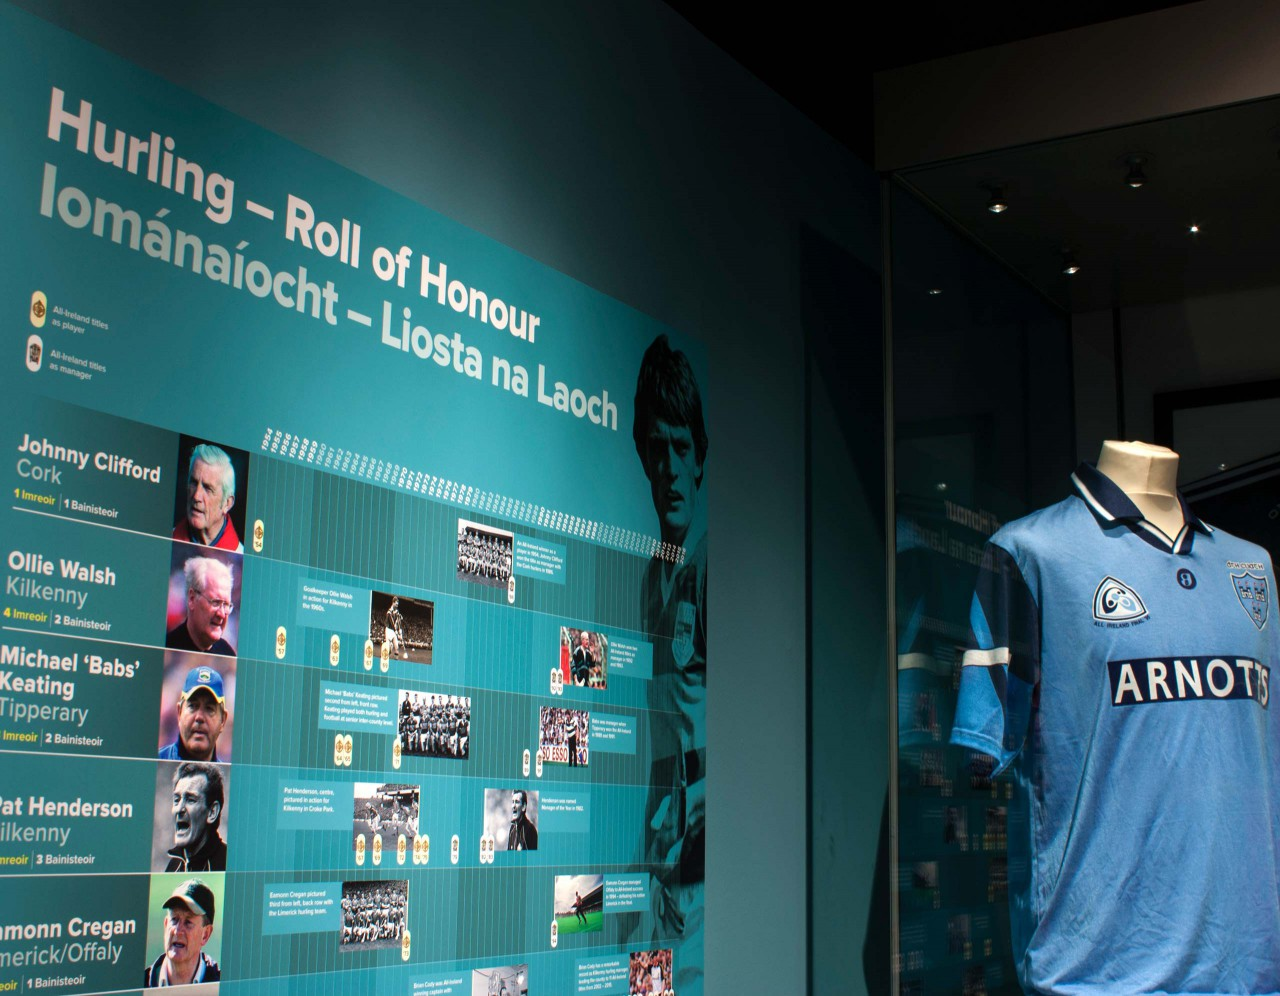 Image of the Hurling roll of honour panel for the Imreoir To Bainisteoir Exhibition in the GAA Museum